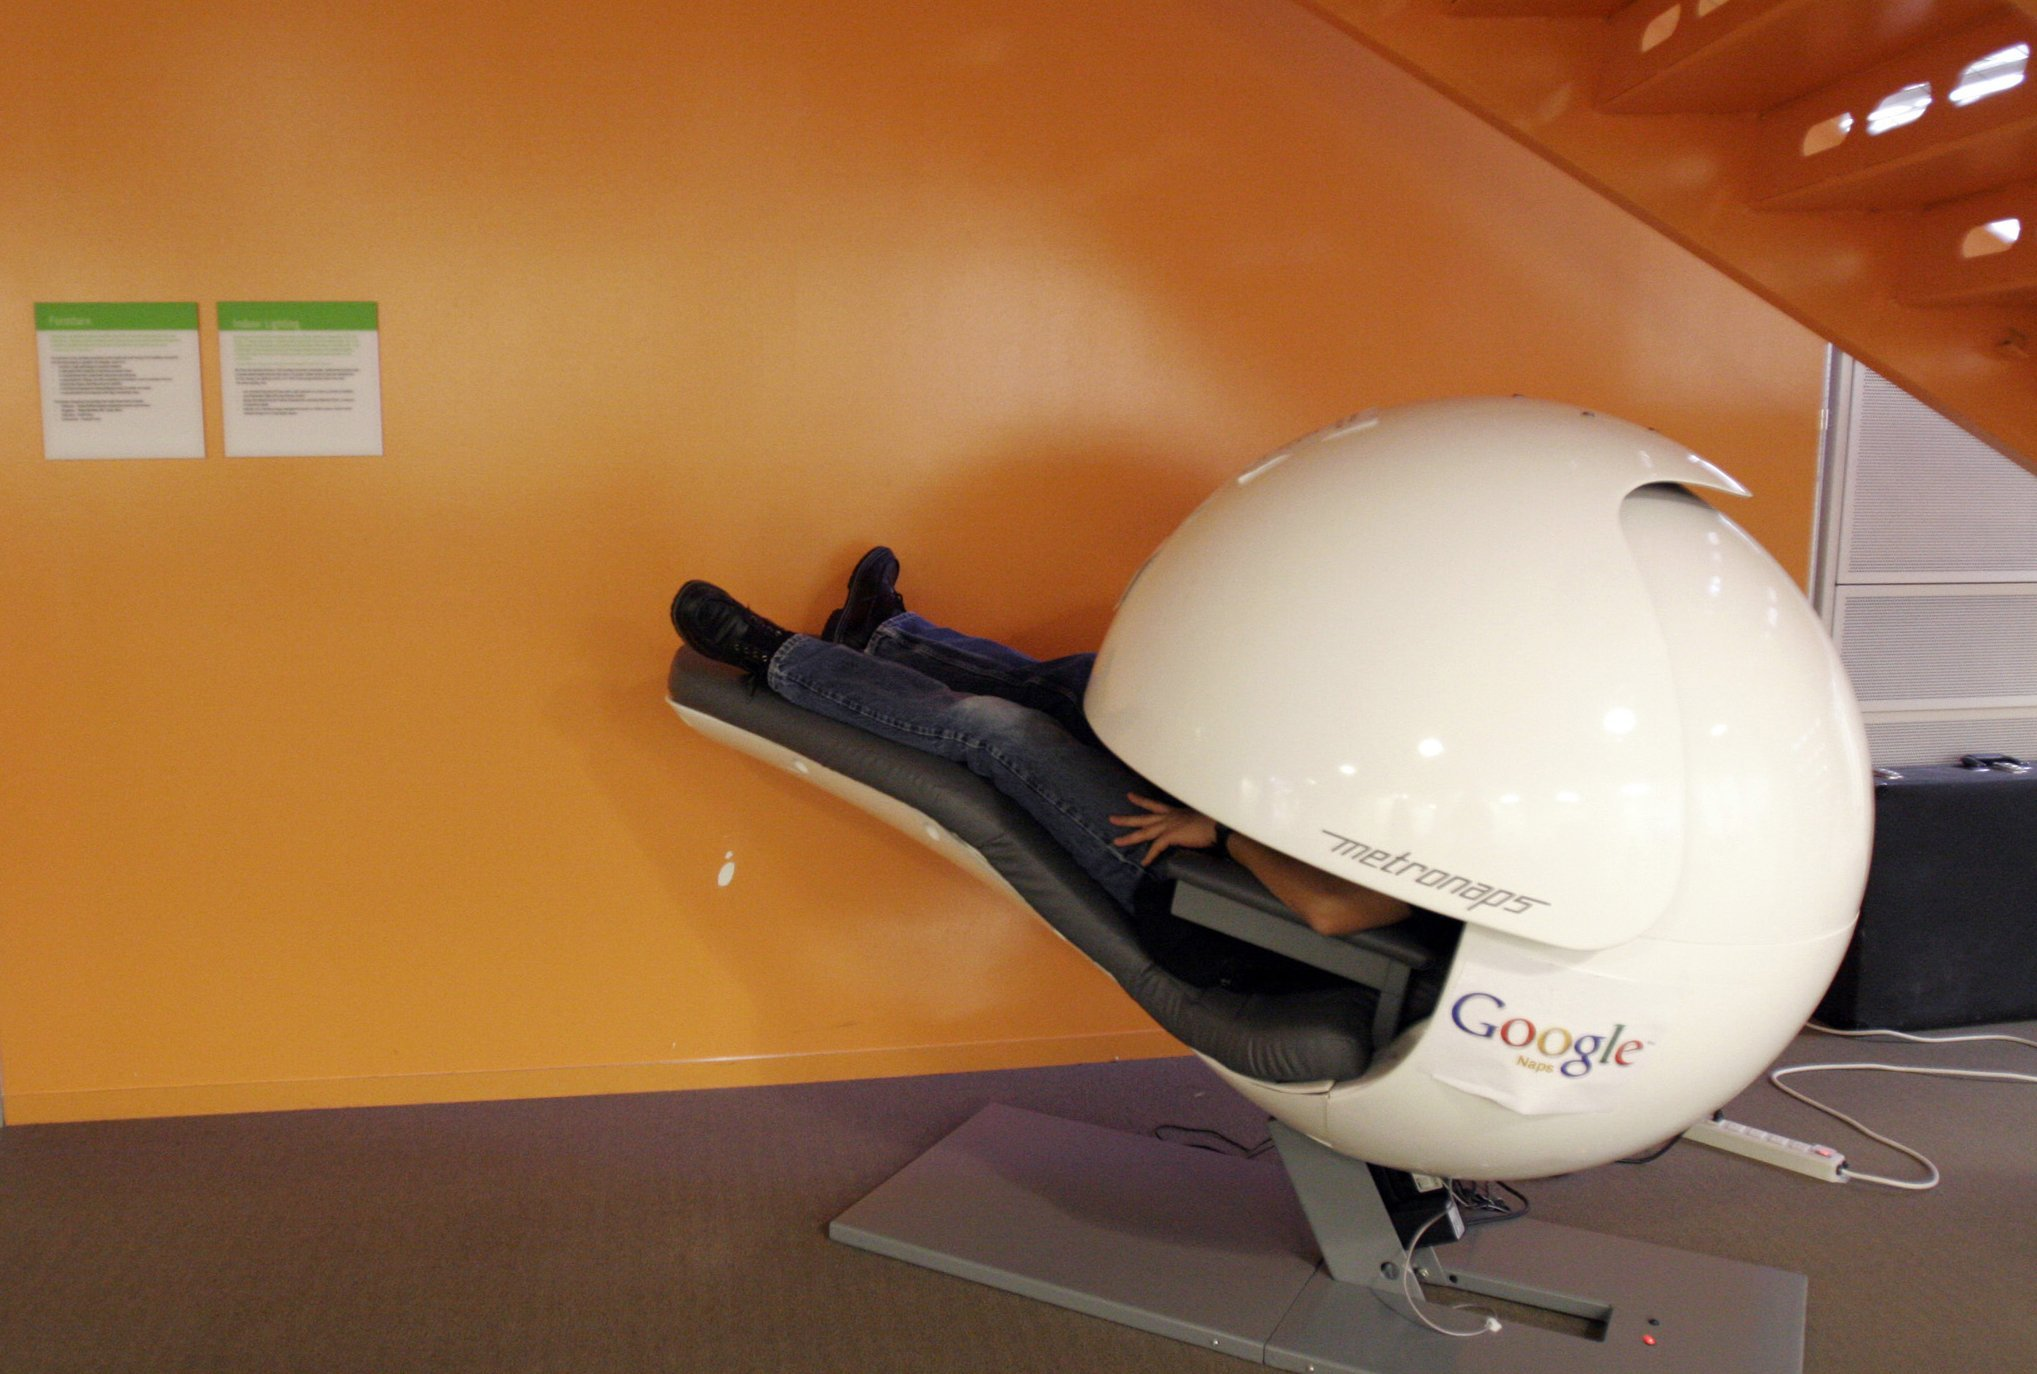 Google sleep pod